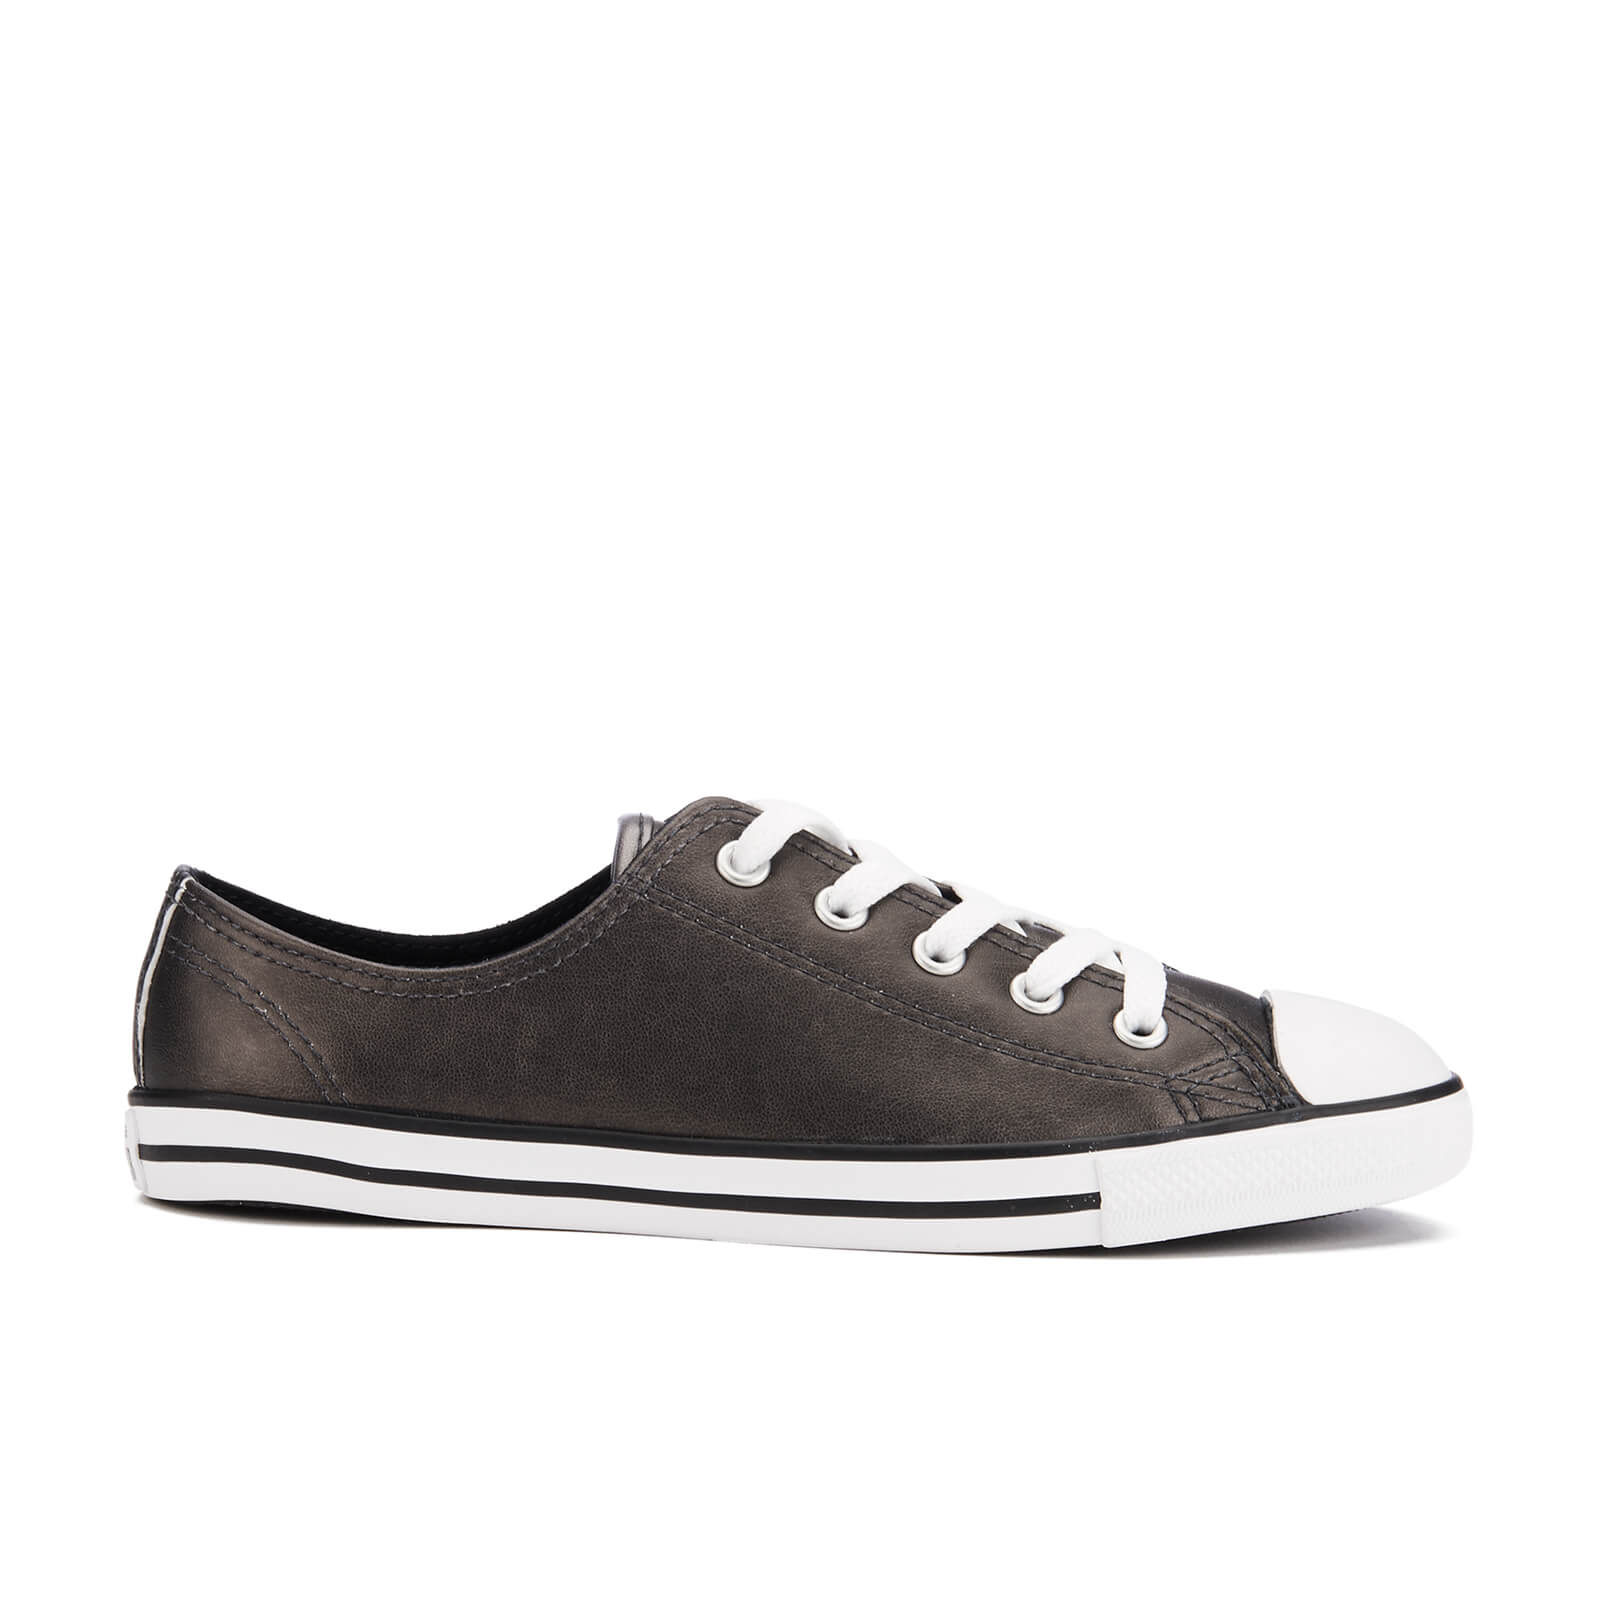 d3e8962b15ac Converse Women s Chuck Taylor All Star Dainty Ox Trainers - Black Black  White - Free UK Delivery over £50